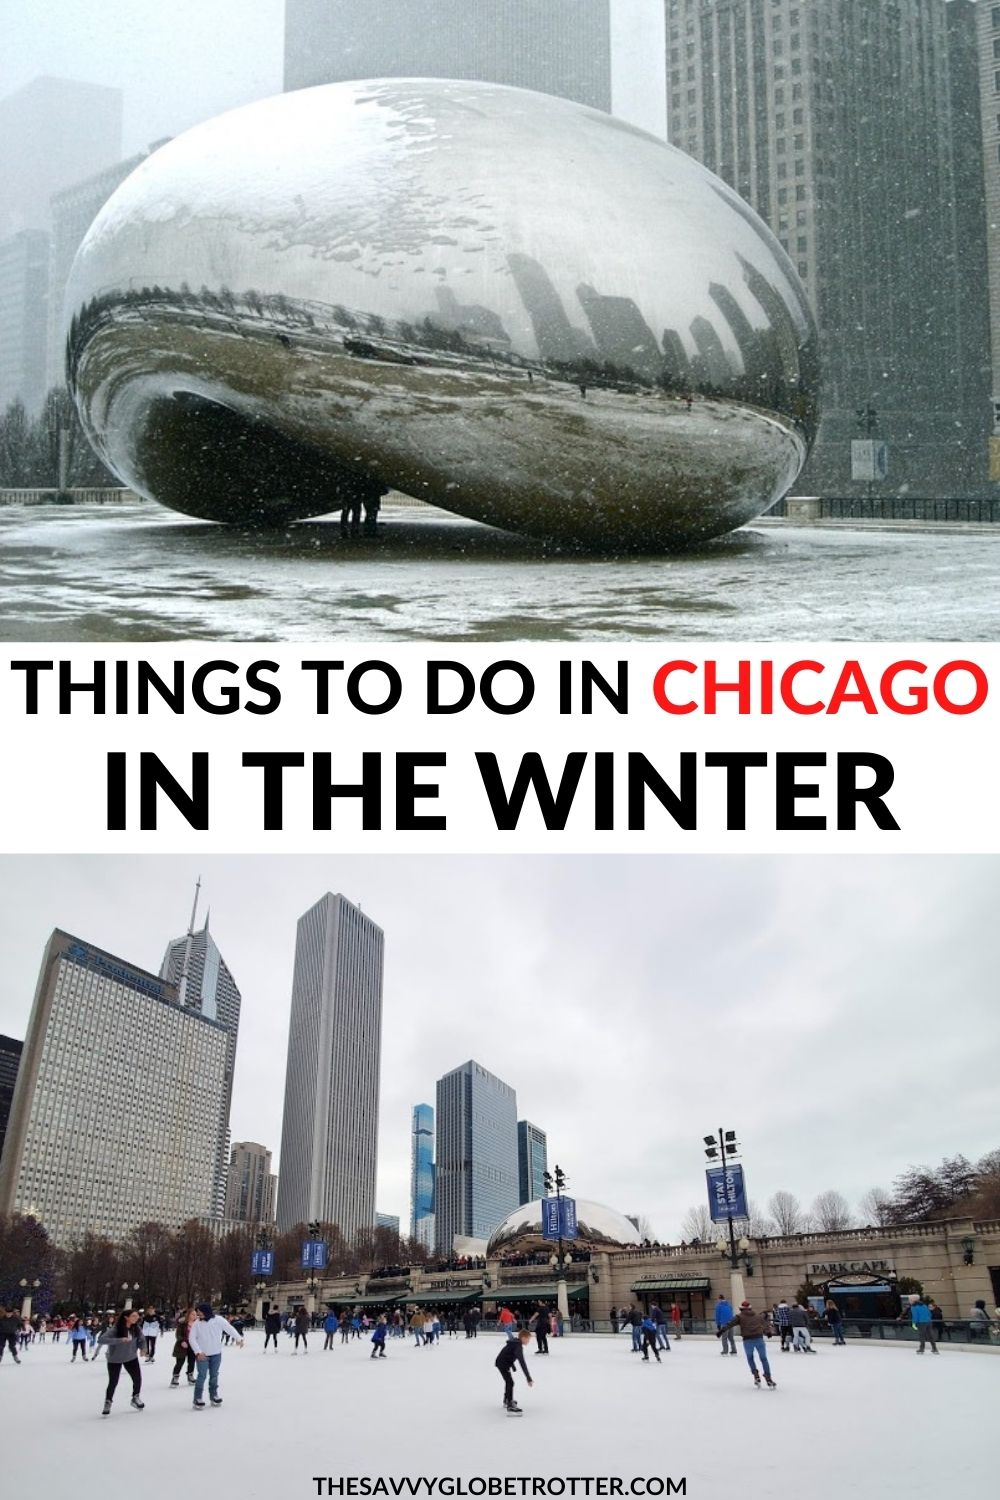 Things to do in Chicago in the winter